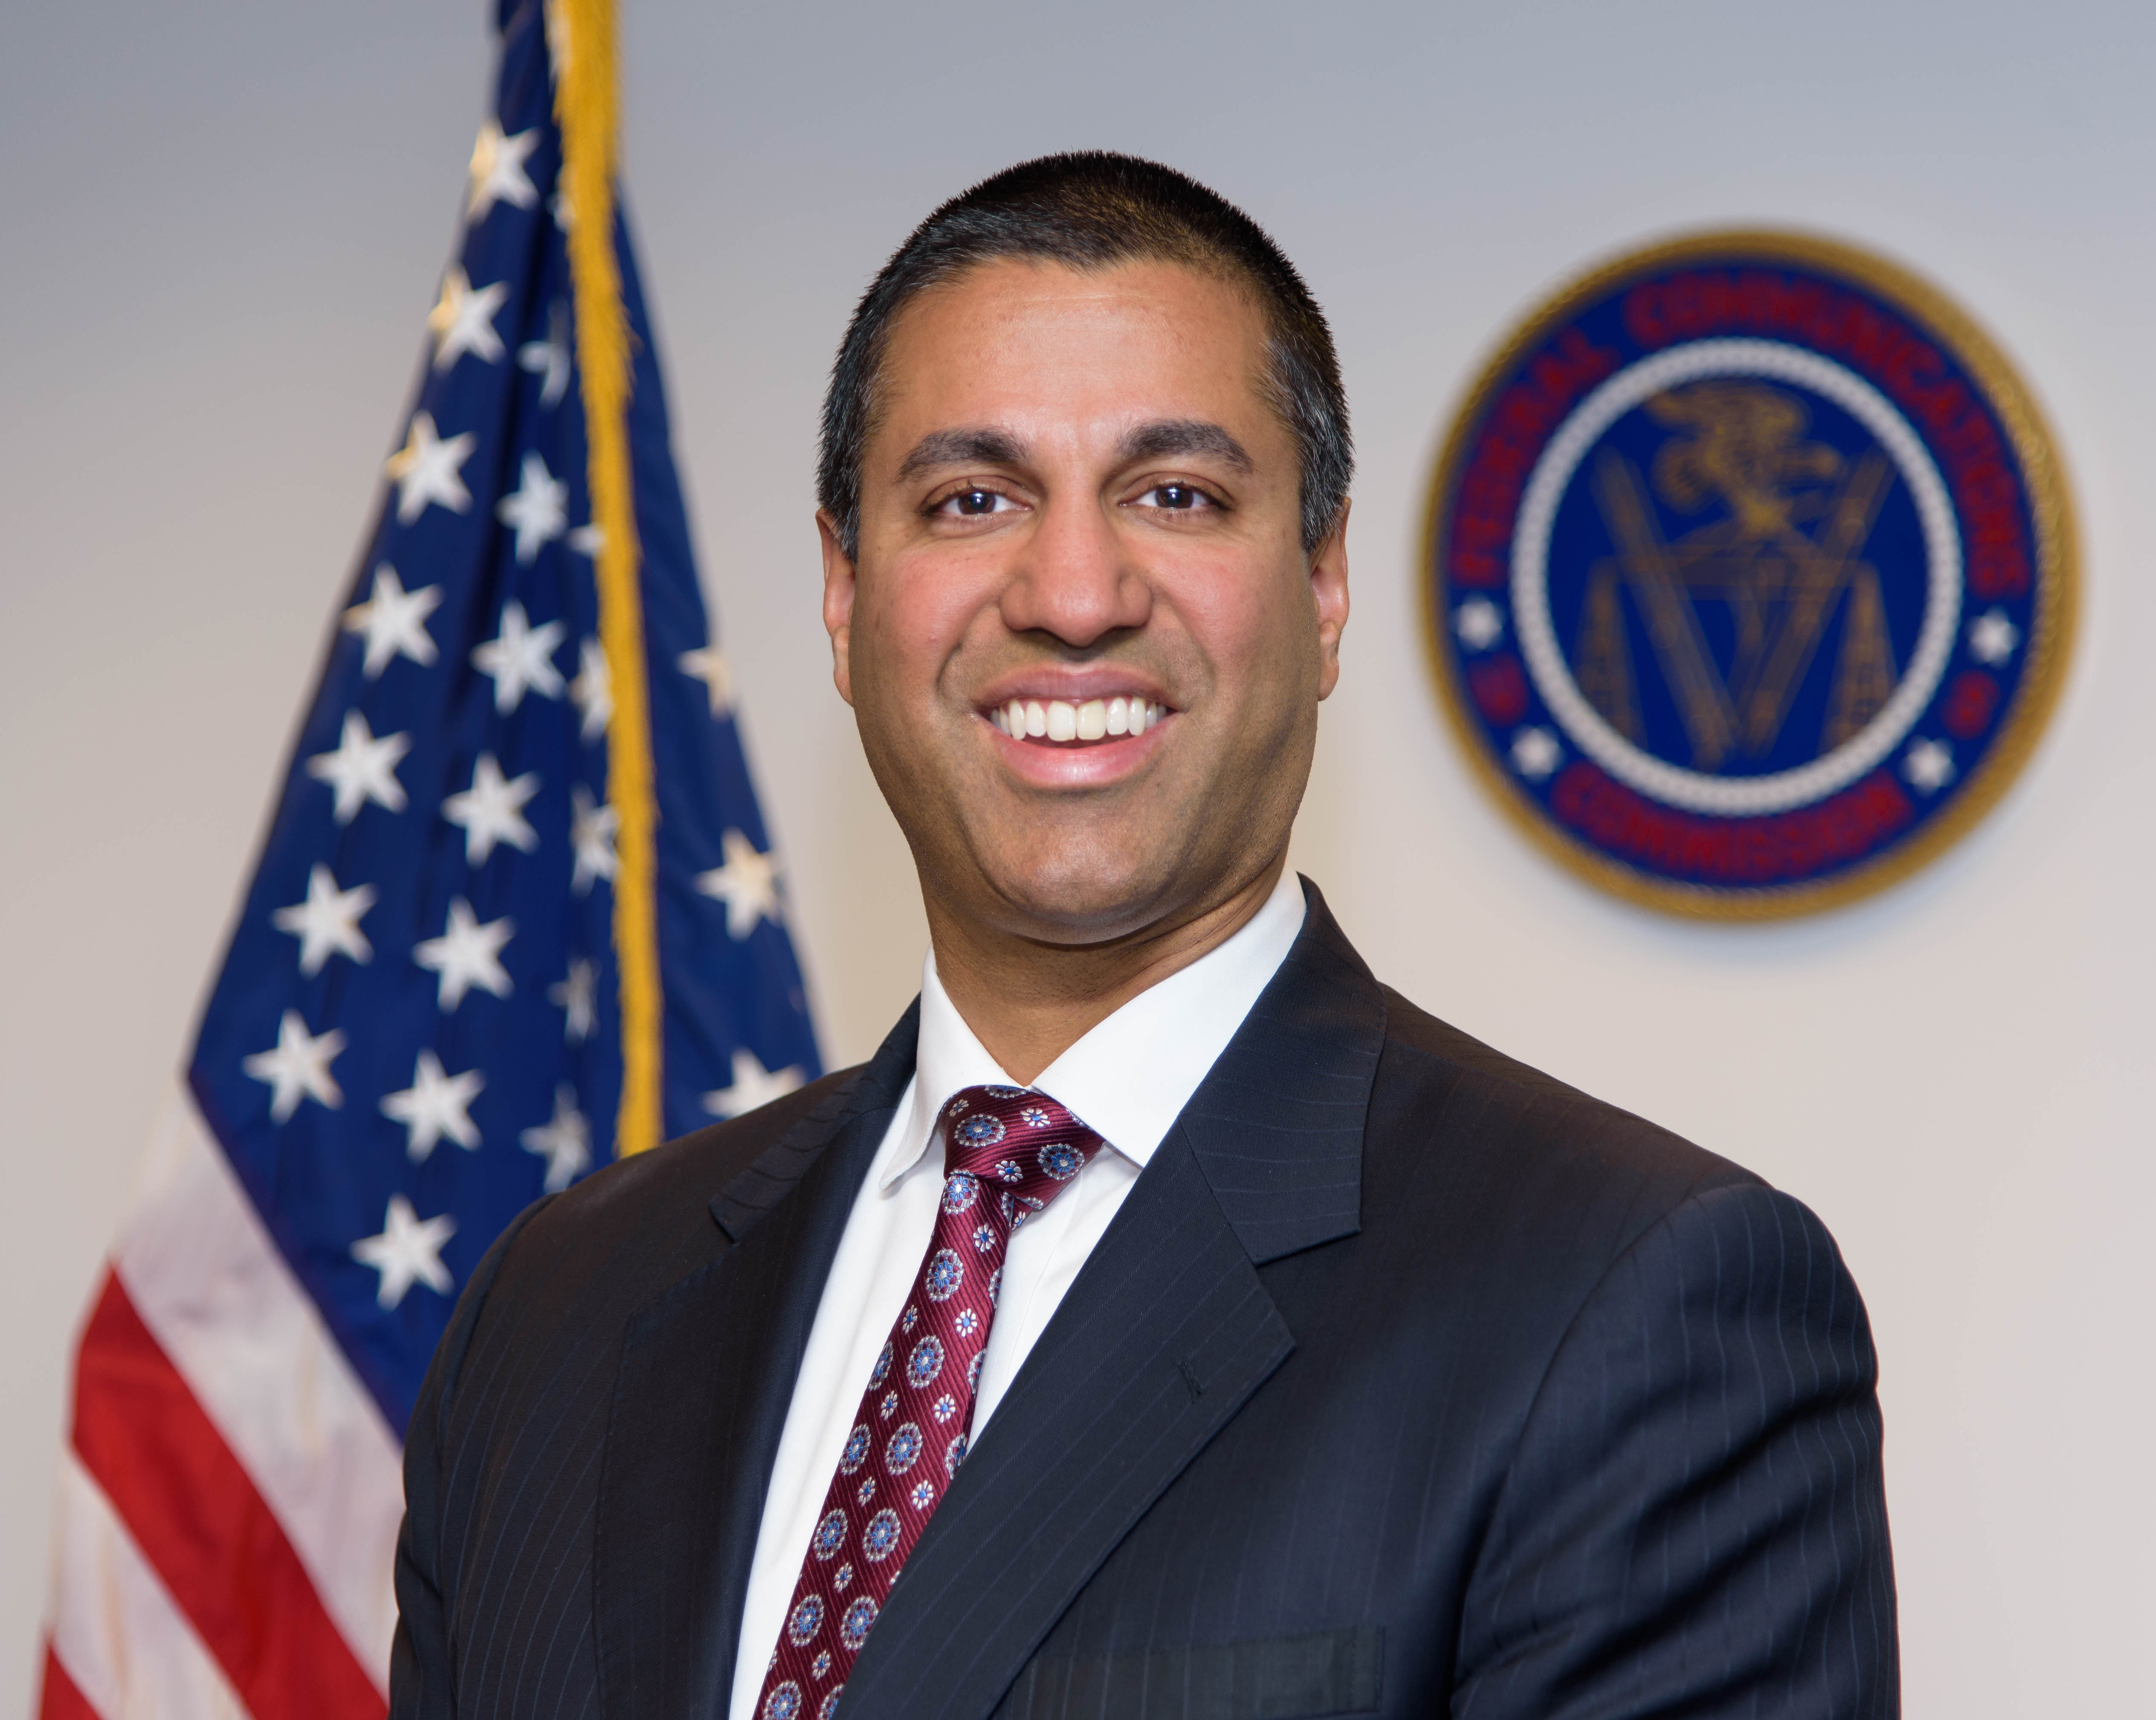 Feds Urged To Improve Transition >> Ajit Pai Federal Communications Commission